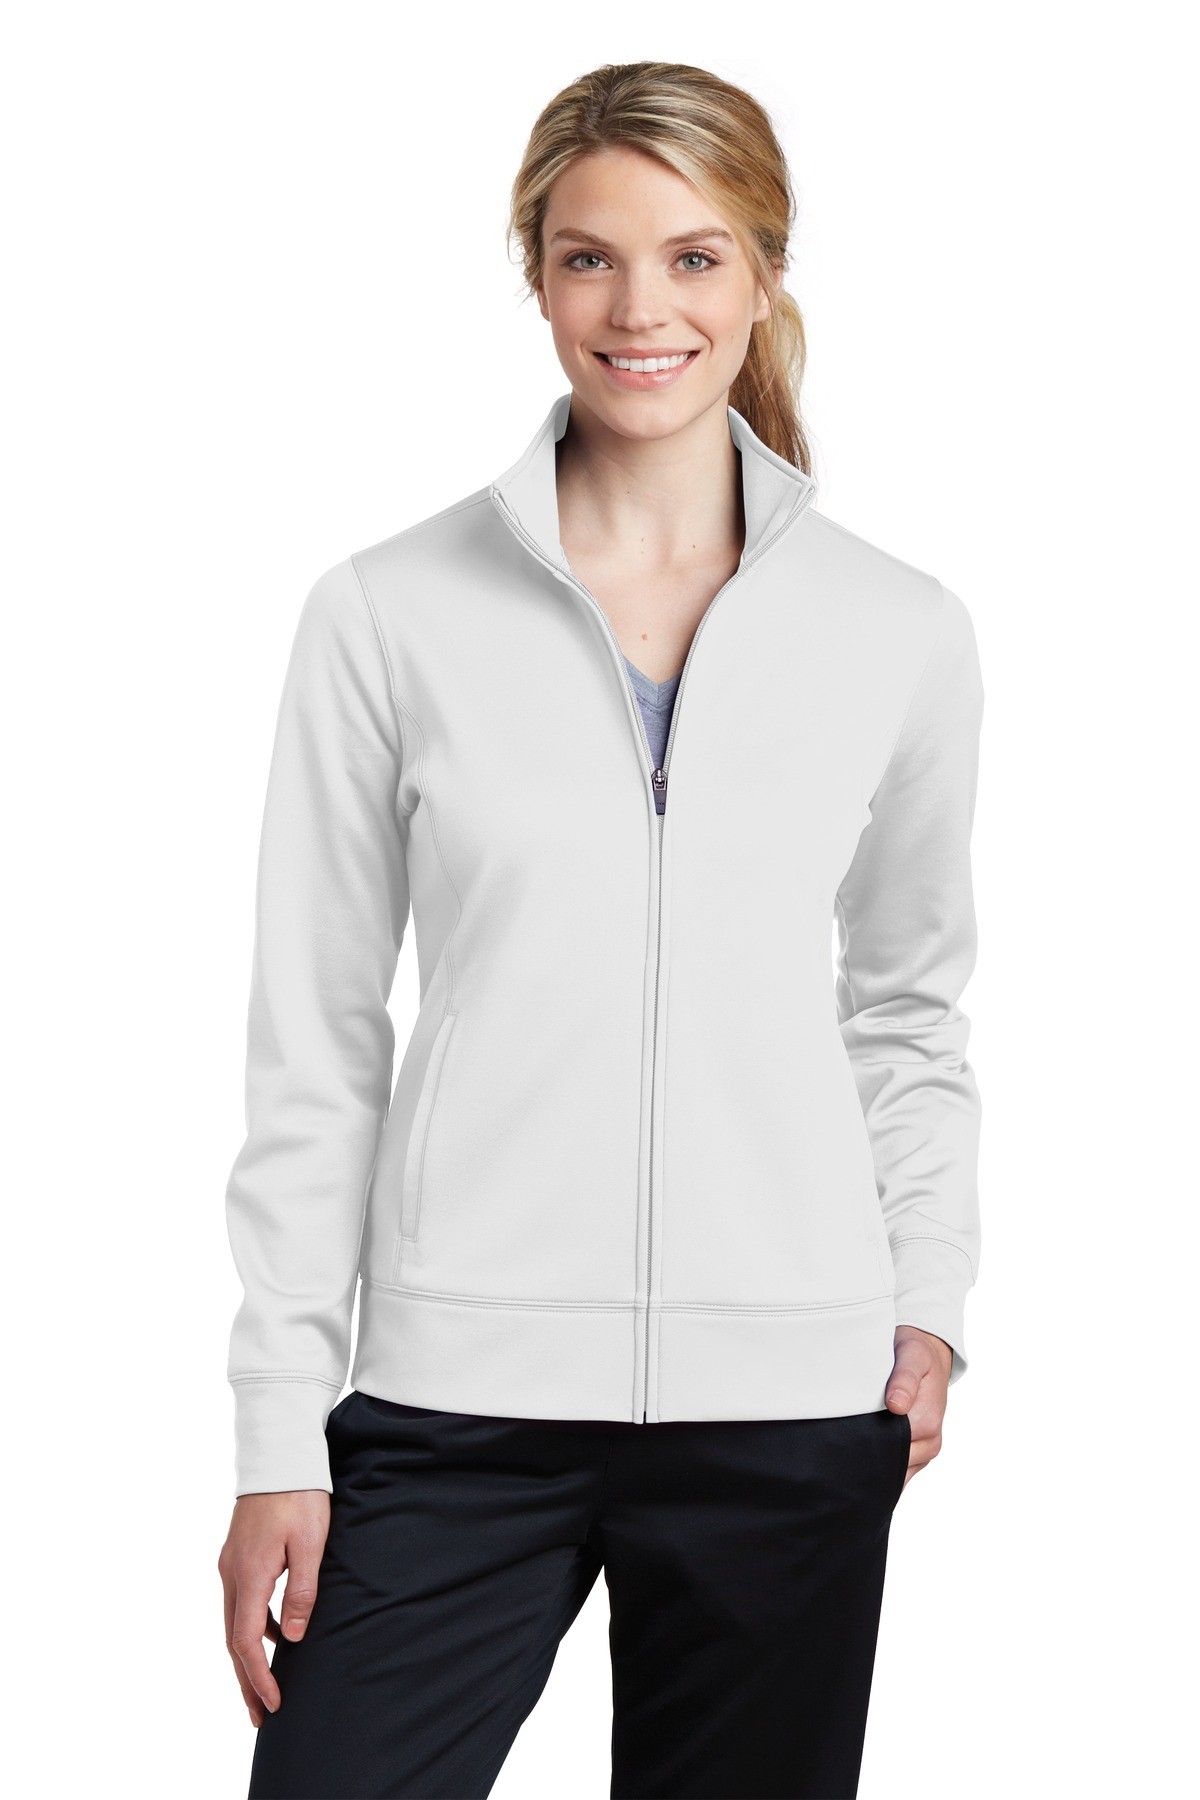 Sport-Tek ®  Ladies Sport-Wick ®  Fleece Full-Zip Jacket.  LST241 - White